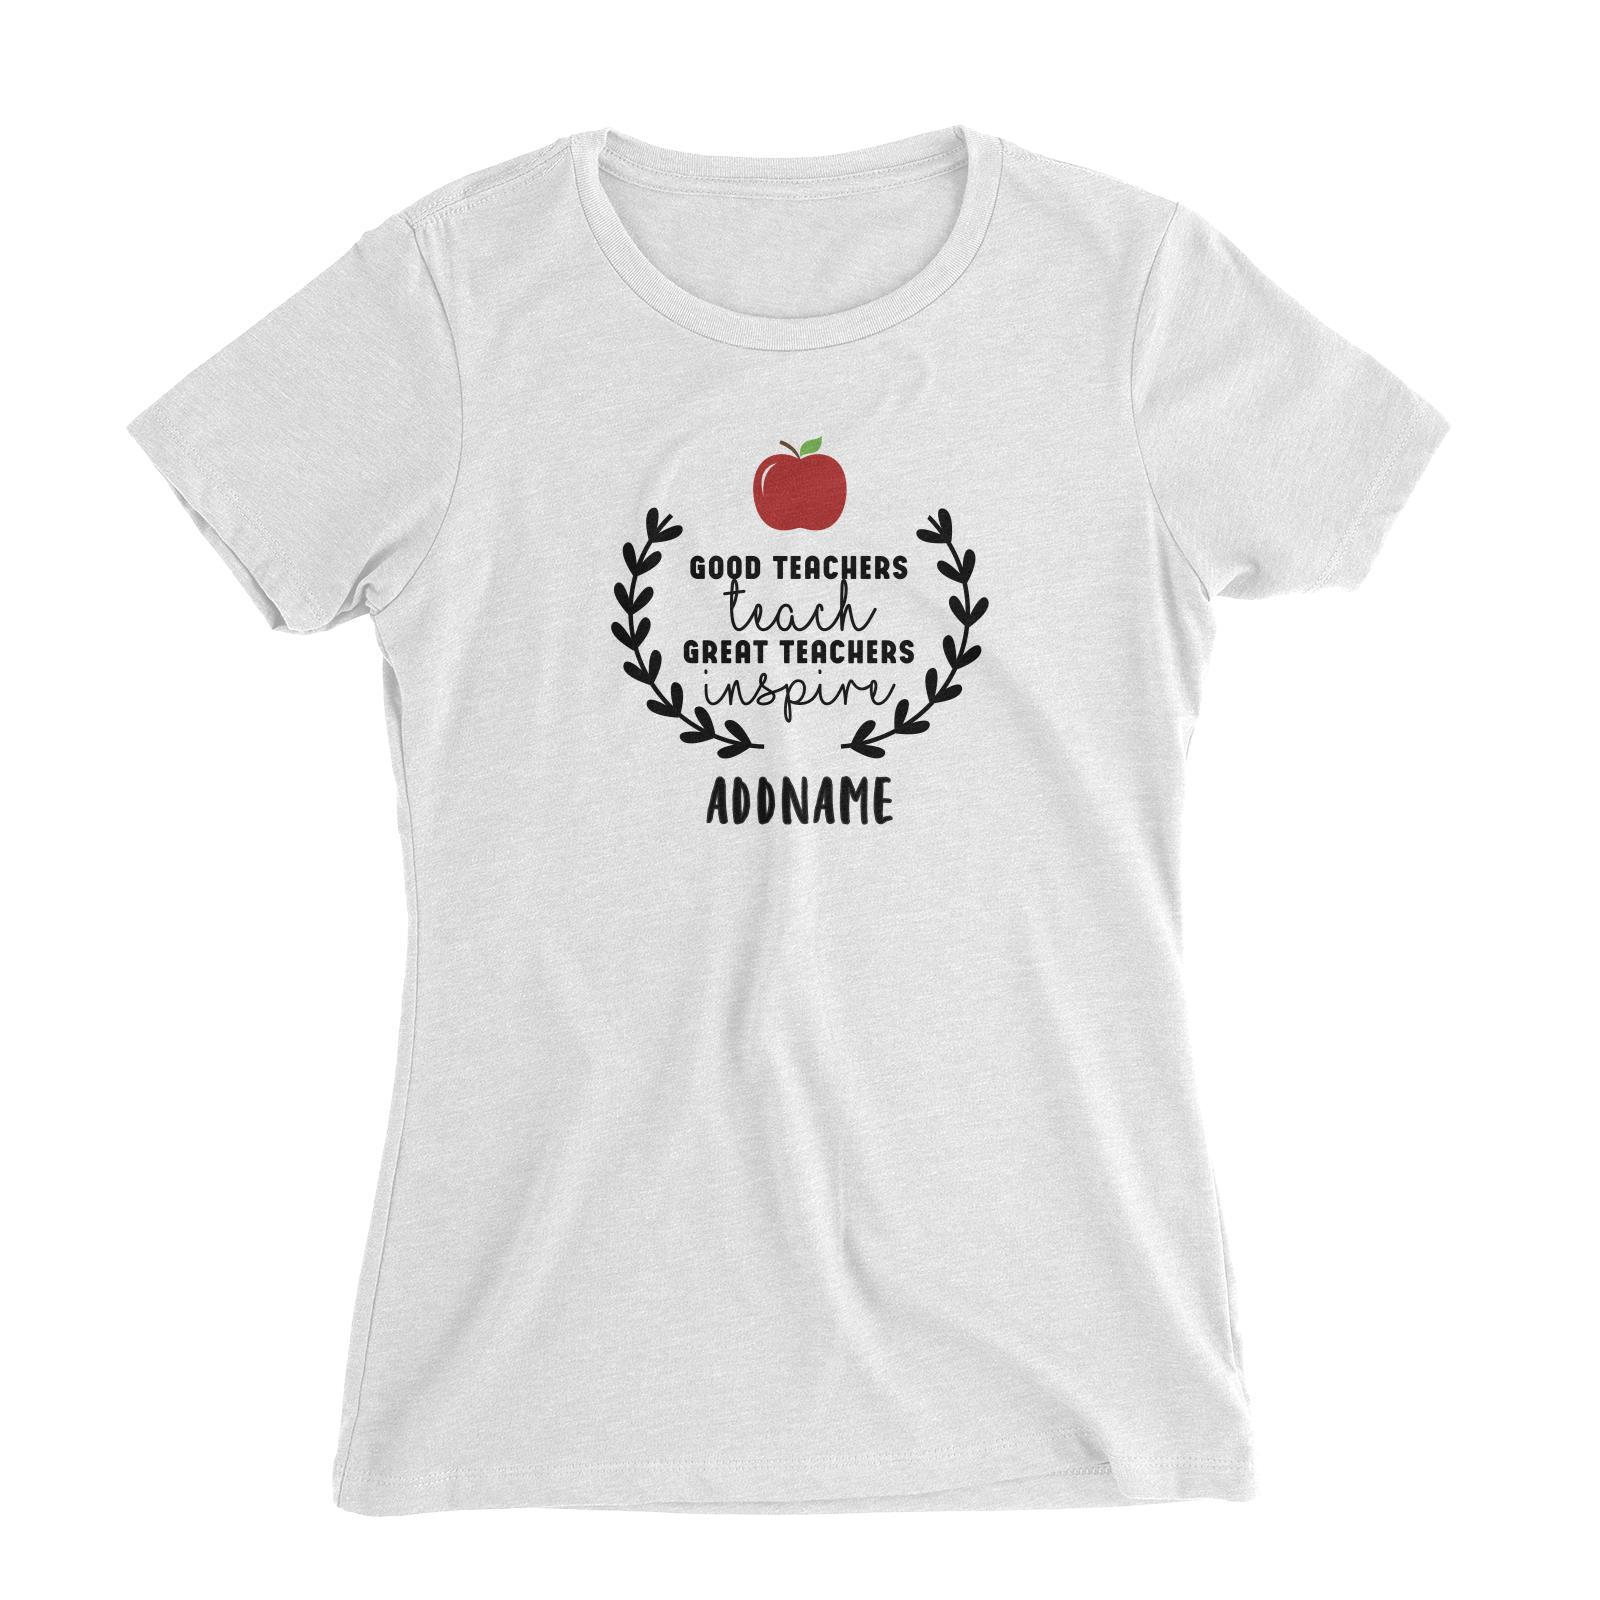 Great Teachers Good Teachers Teach Great Teachers Inspire Addname Women's Slim Fit T-Shirt